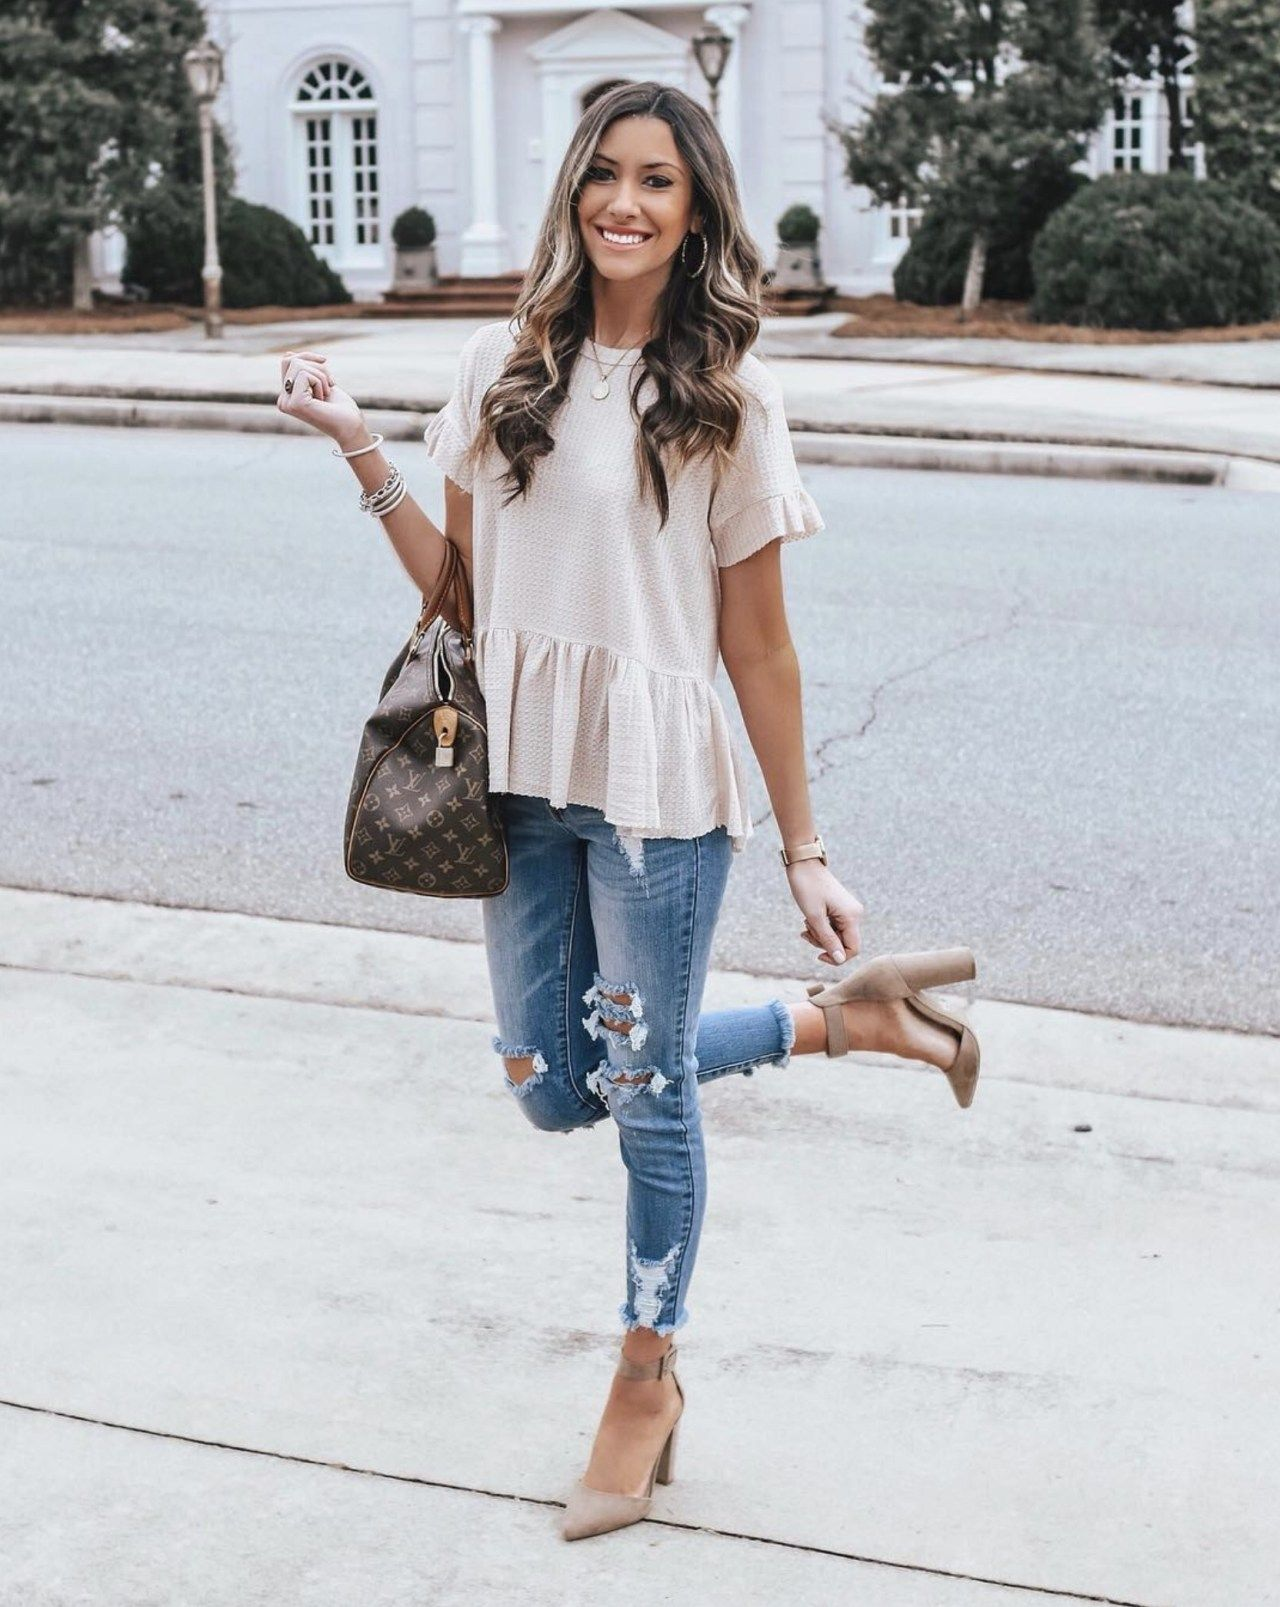 Most Stylish Spring Women Outfits Ideas 7 7 - looksglam.com